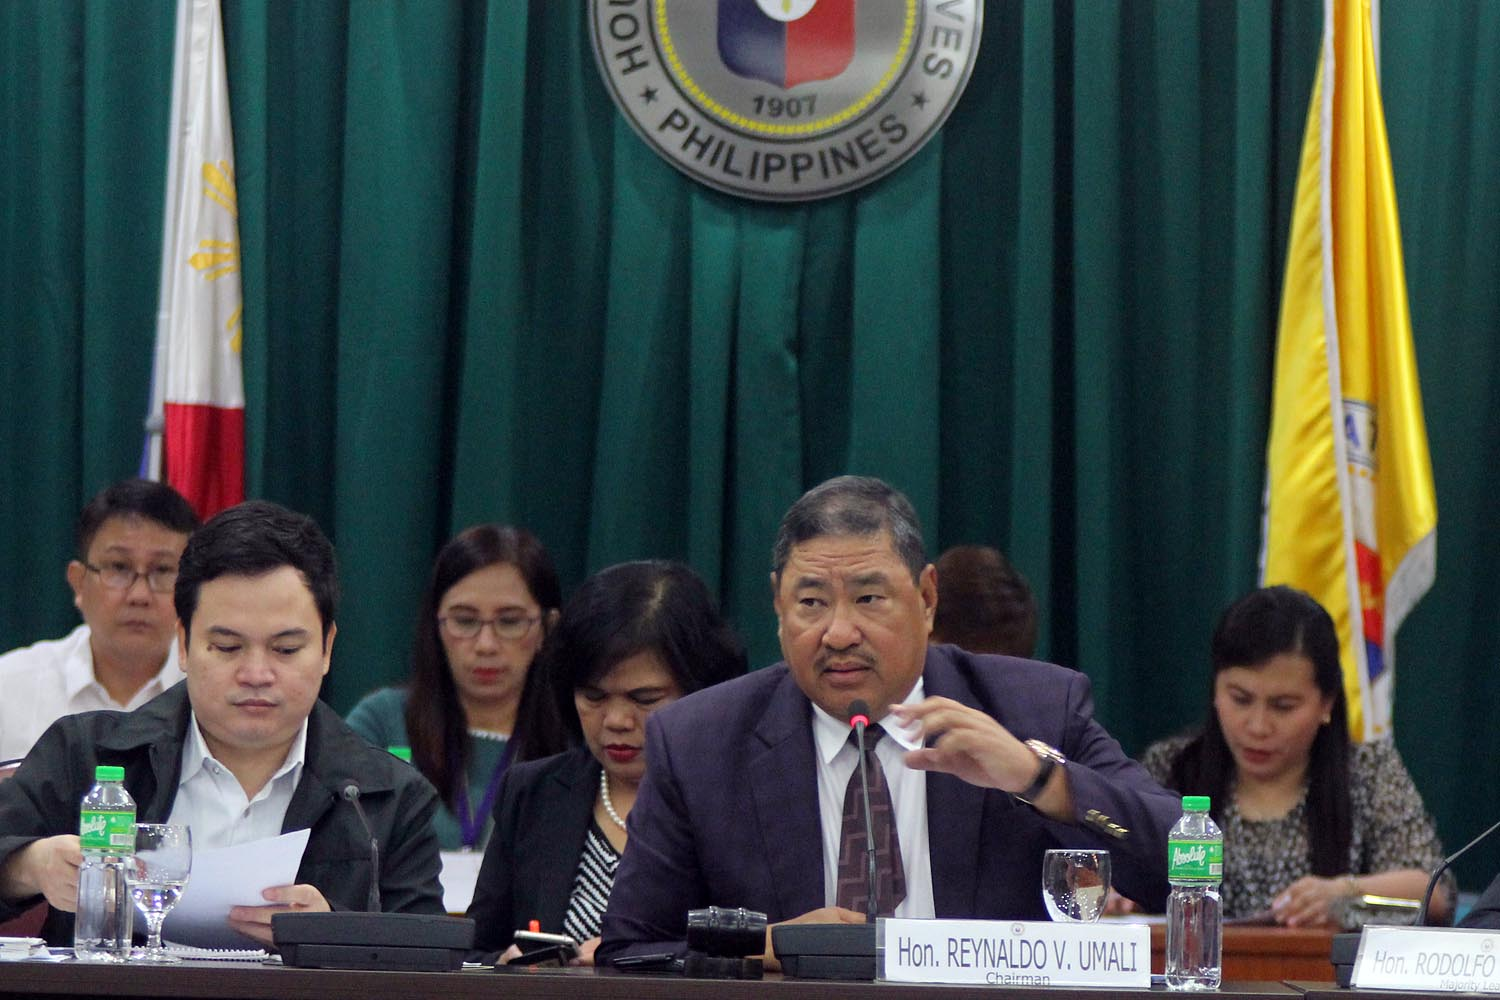 SERENO IMPEACHMENT HEARING. Mindoro Oriental 2nd District Representative Reynaldo Umali, chair of the House committee on justice, presides the hearing on the determination of probable cause in the impeachment complaint against Chief Justice Maria Lourdes Sereno on November 22, 2017. Photo by Darren Langit/Rappler